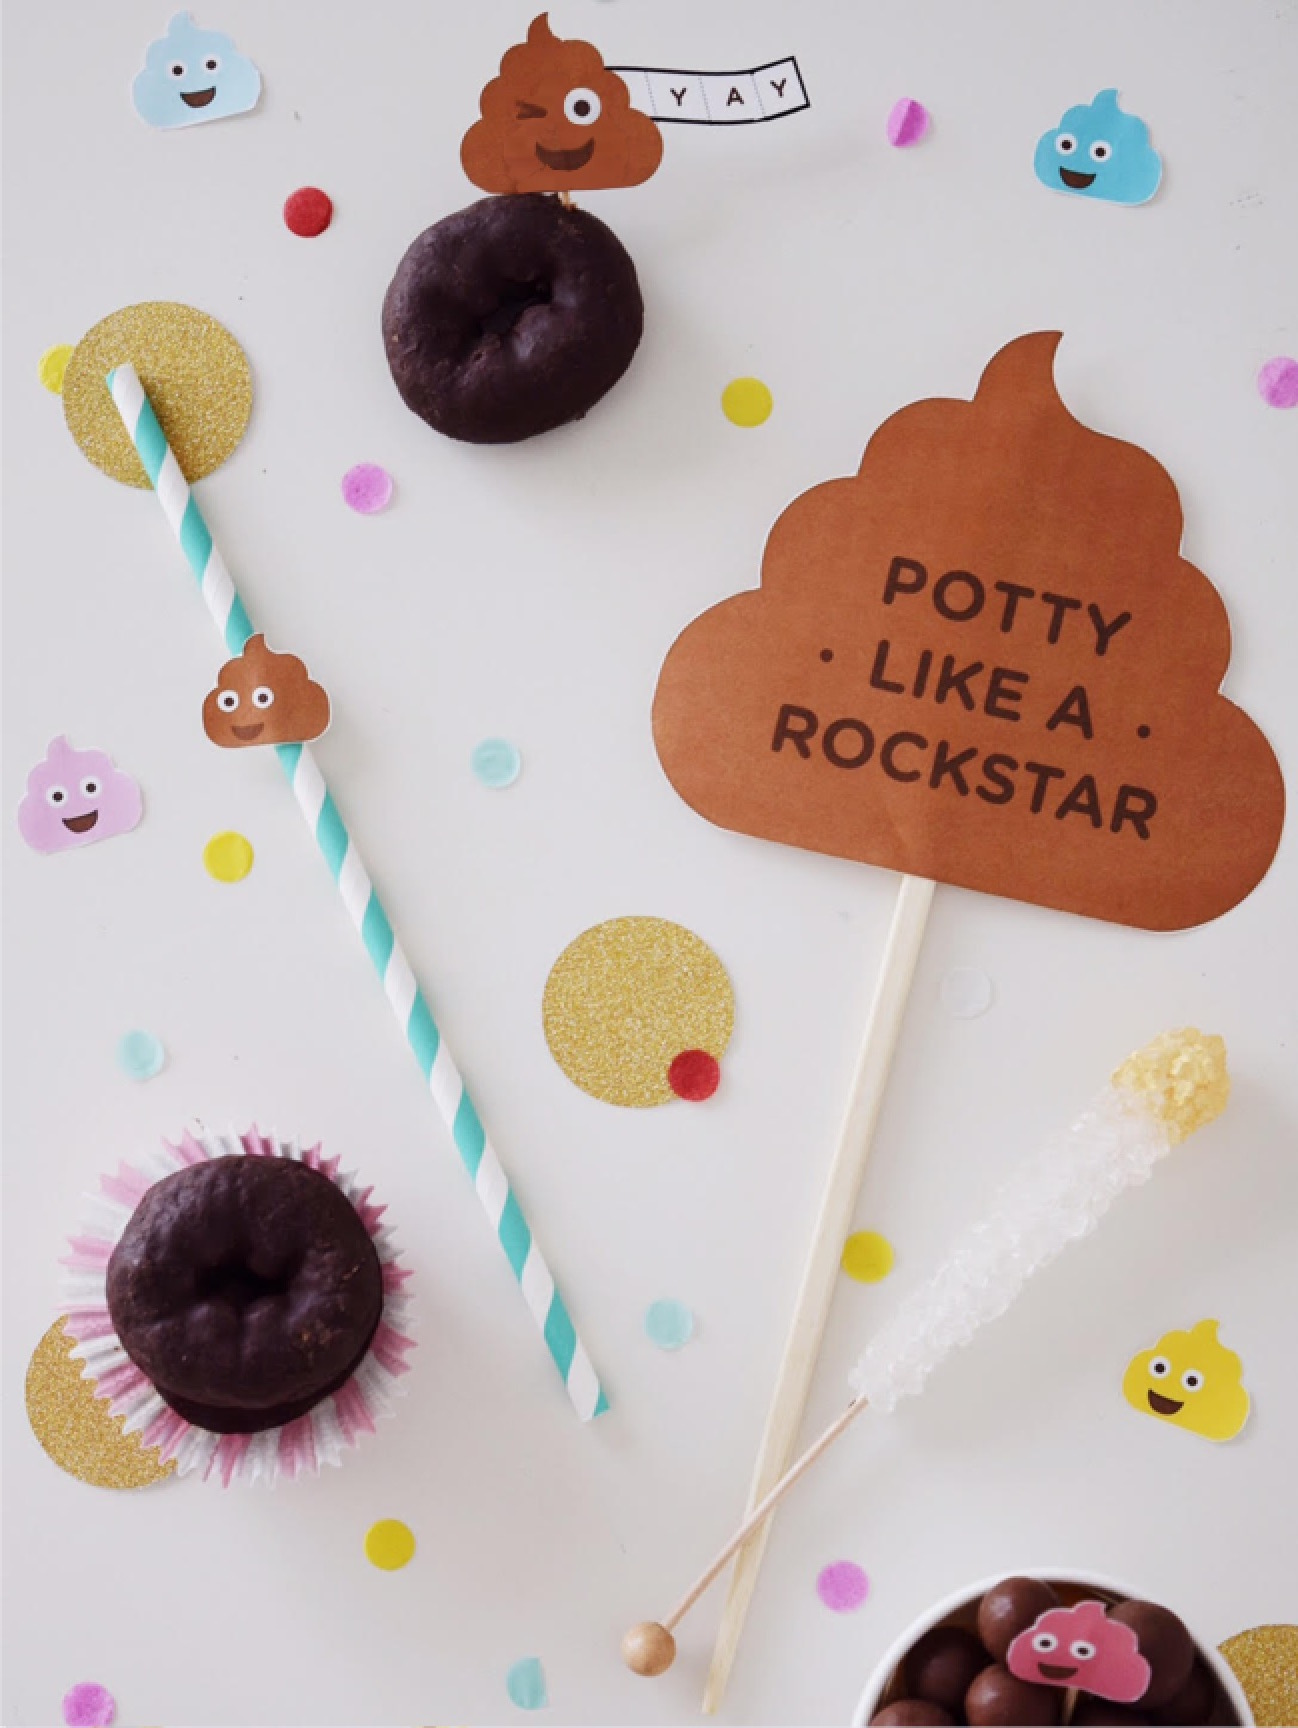 DIY Potty Like Rockstar Party and Printable Photo Booth Props | Potty Training Party